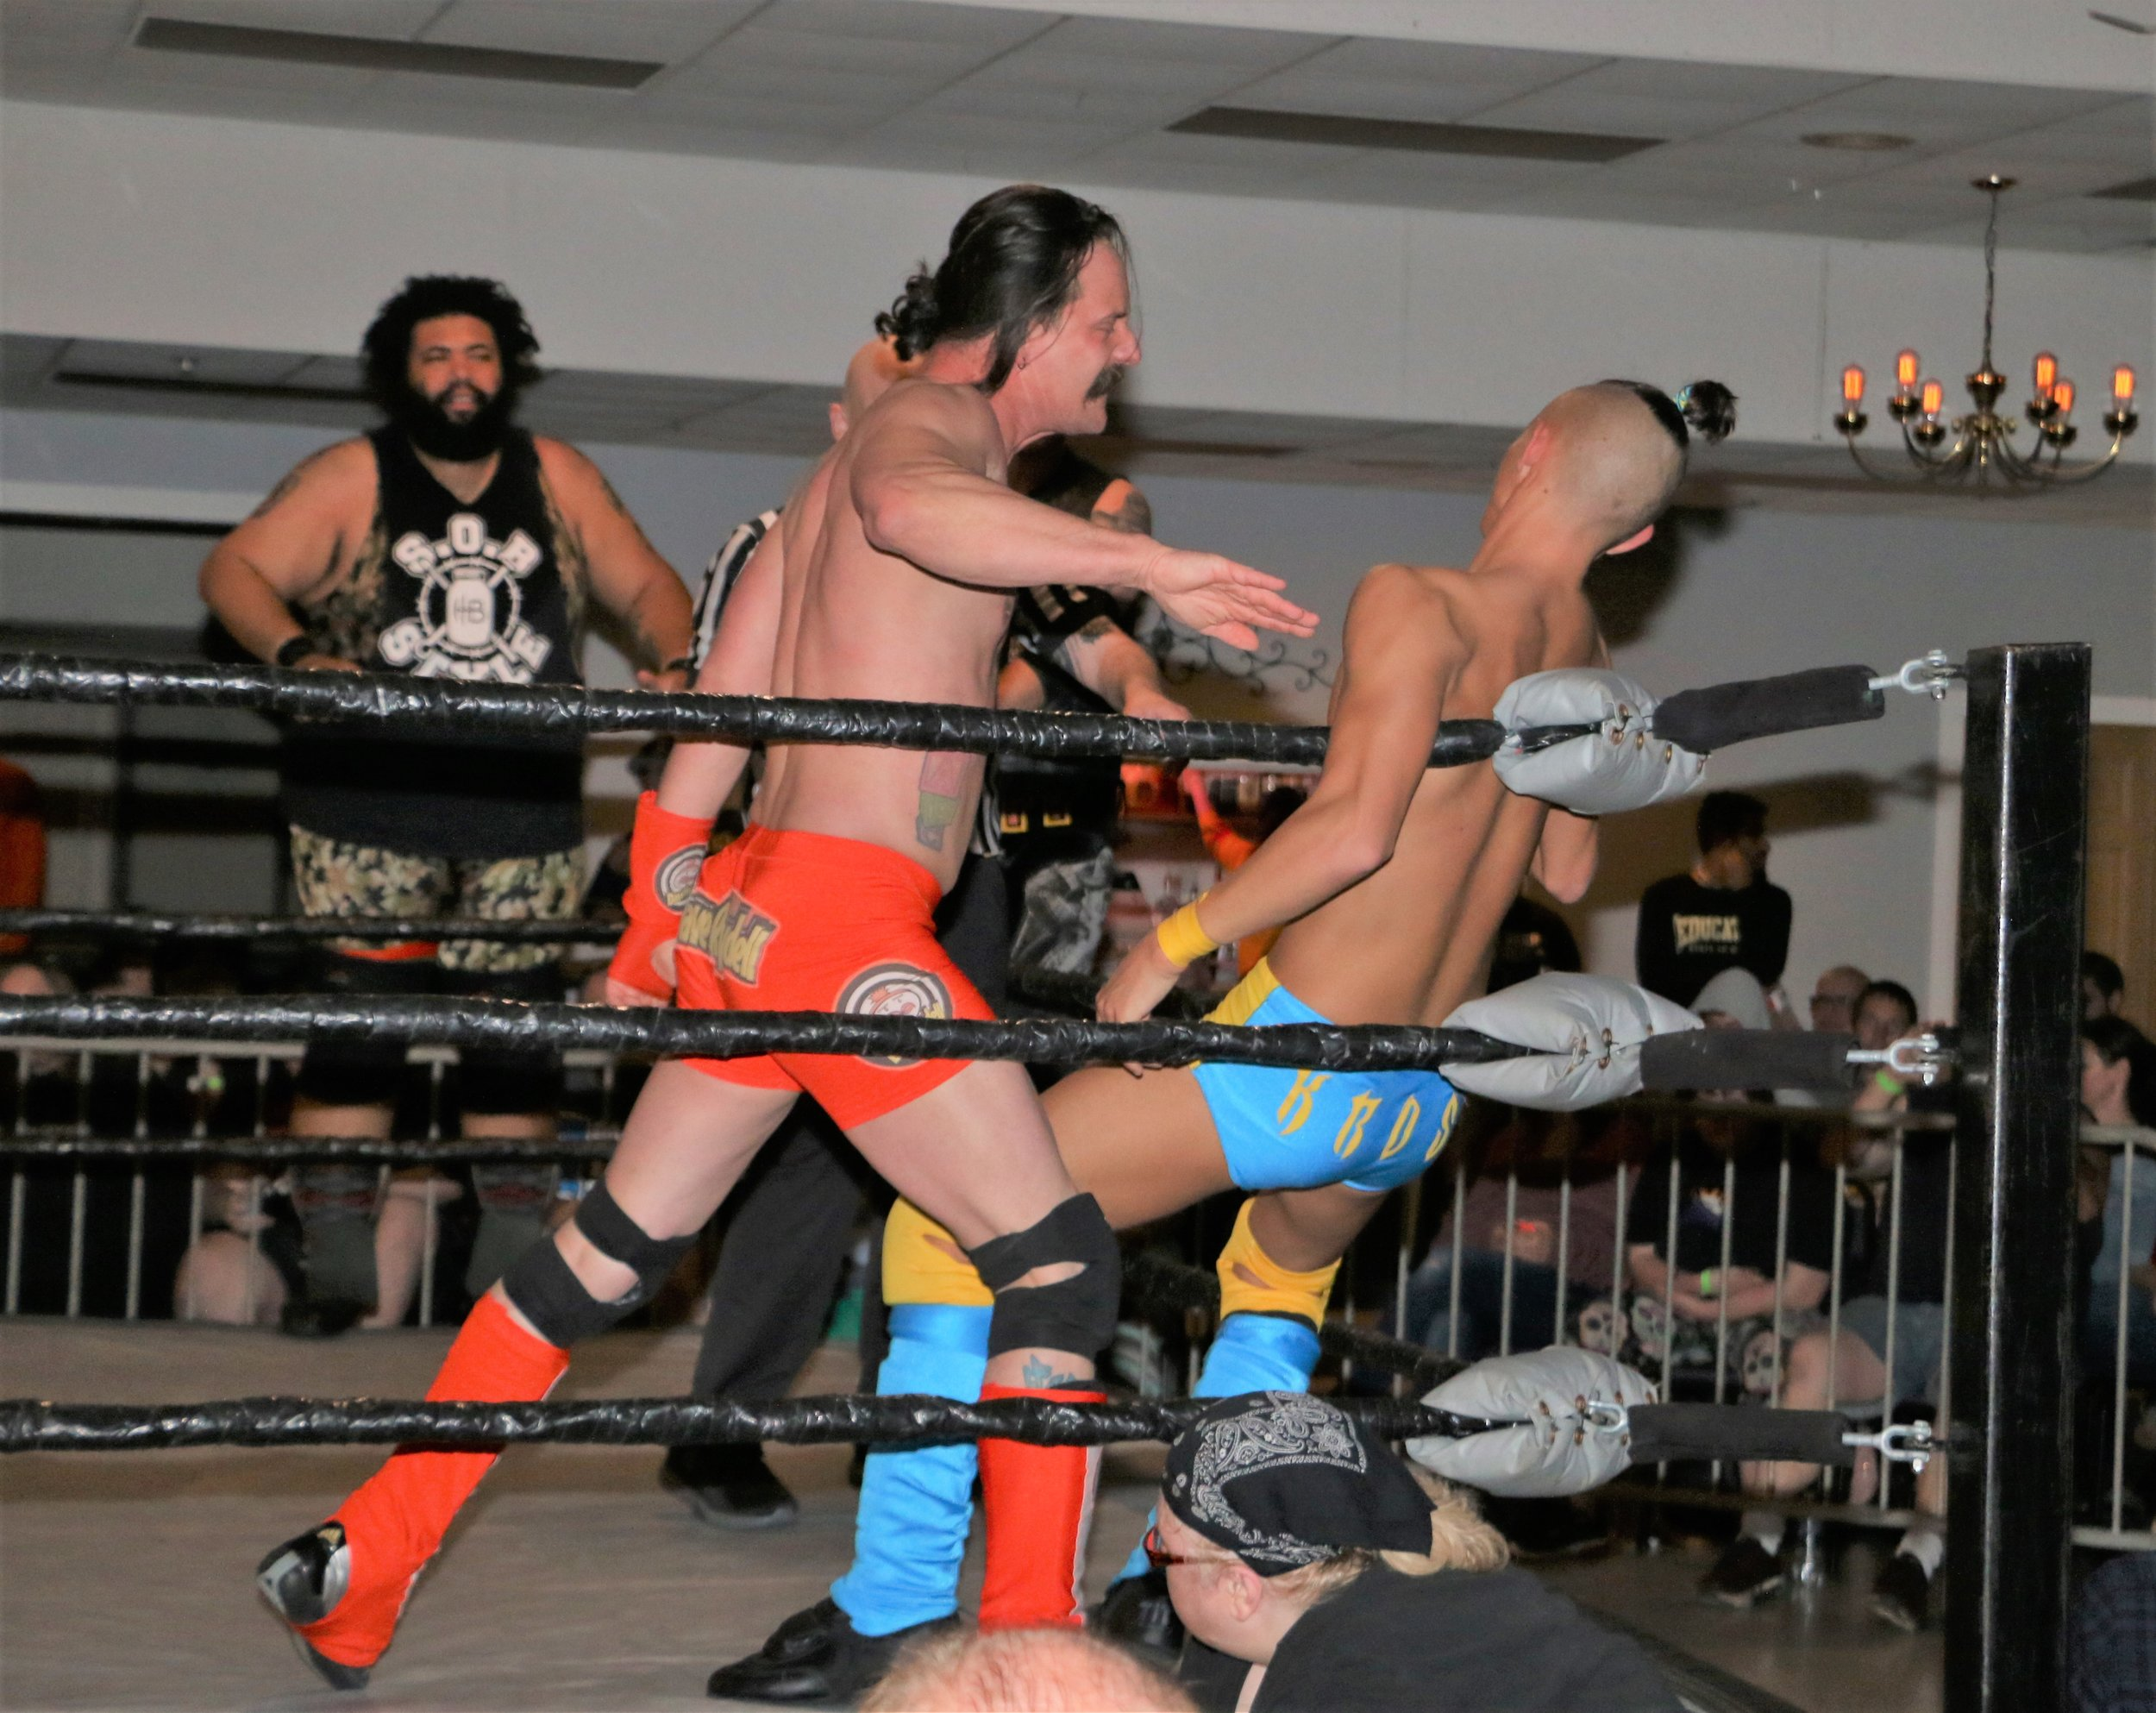 Dave Rydell chops Jordan Kross in the corner during the six-man tag team match.